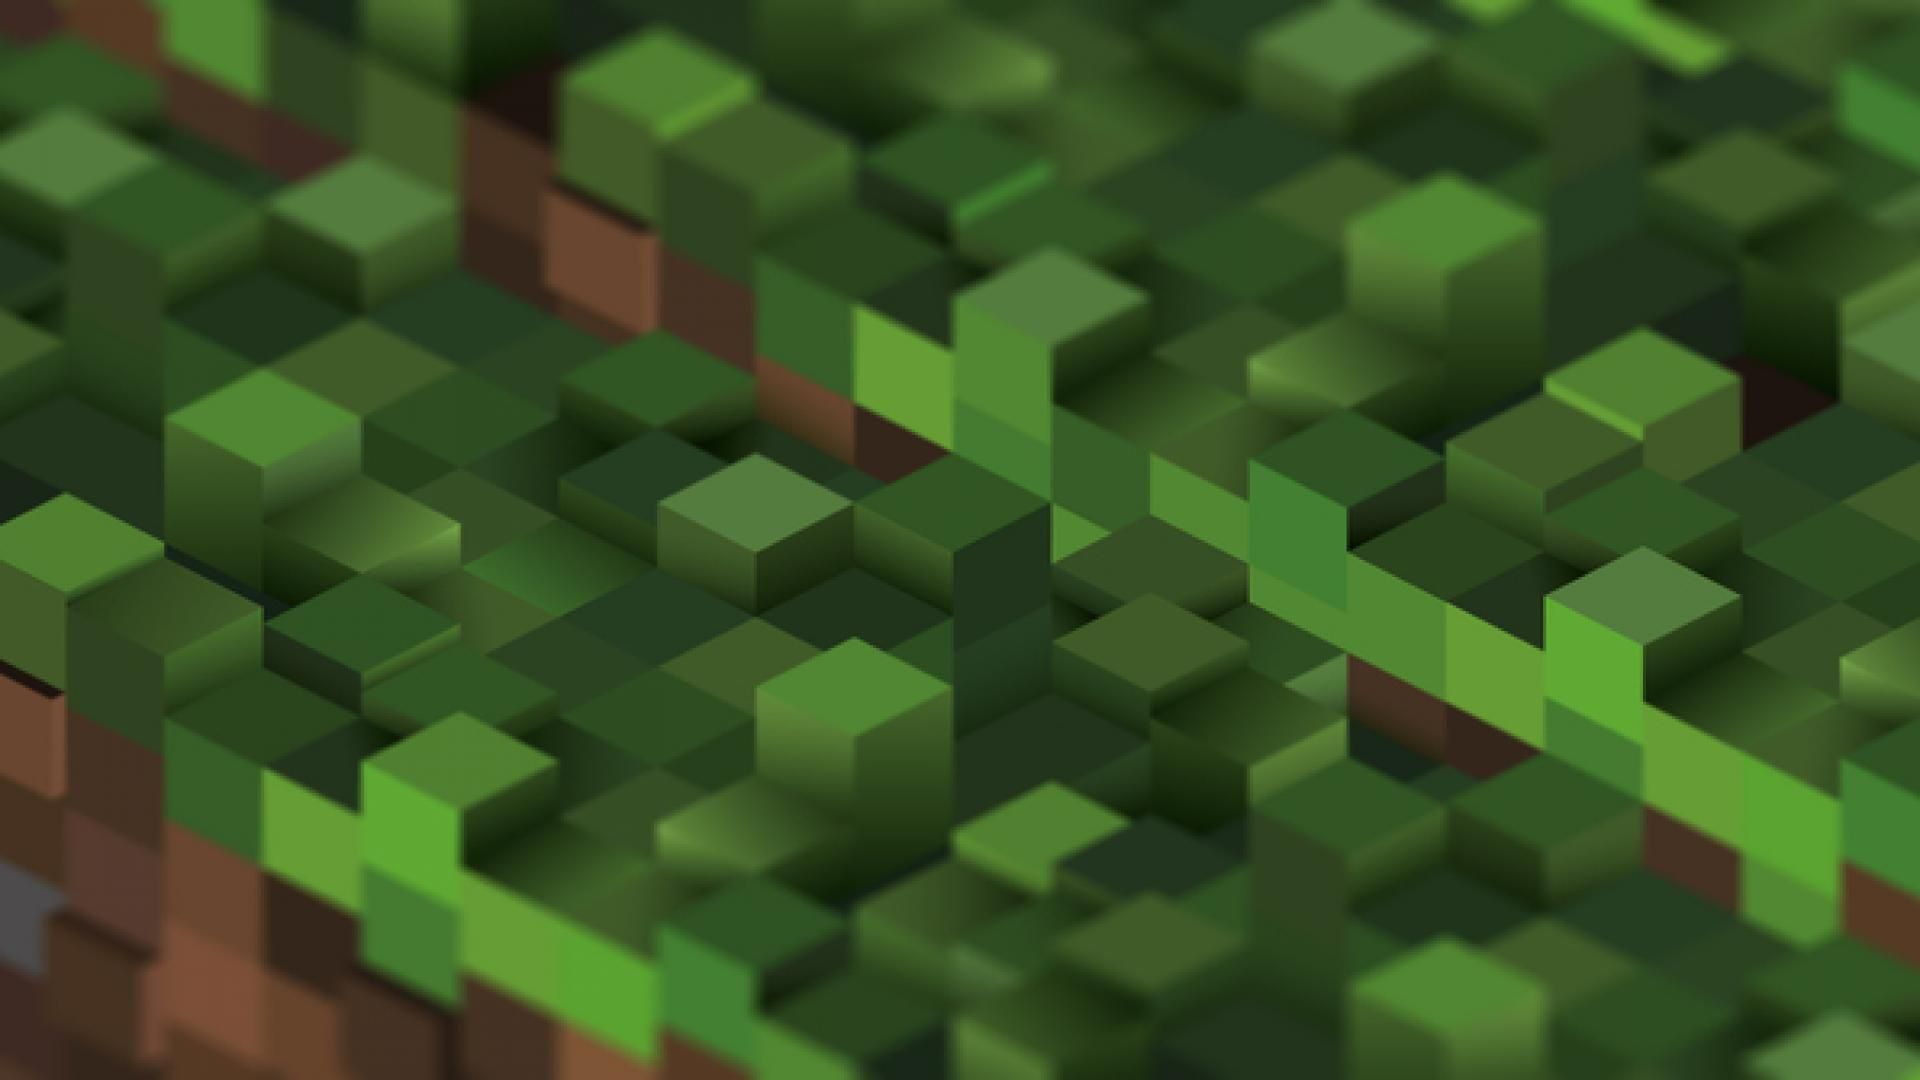 Other Tree Background Wallpaper Picture Minecraft Backgrounds Minecraft Wallpaper Wallpaper Minecraft